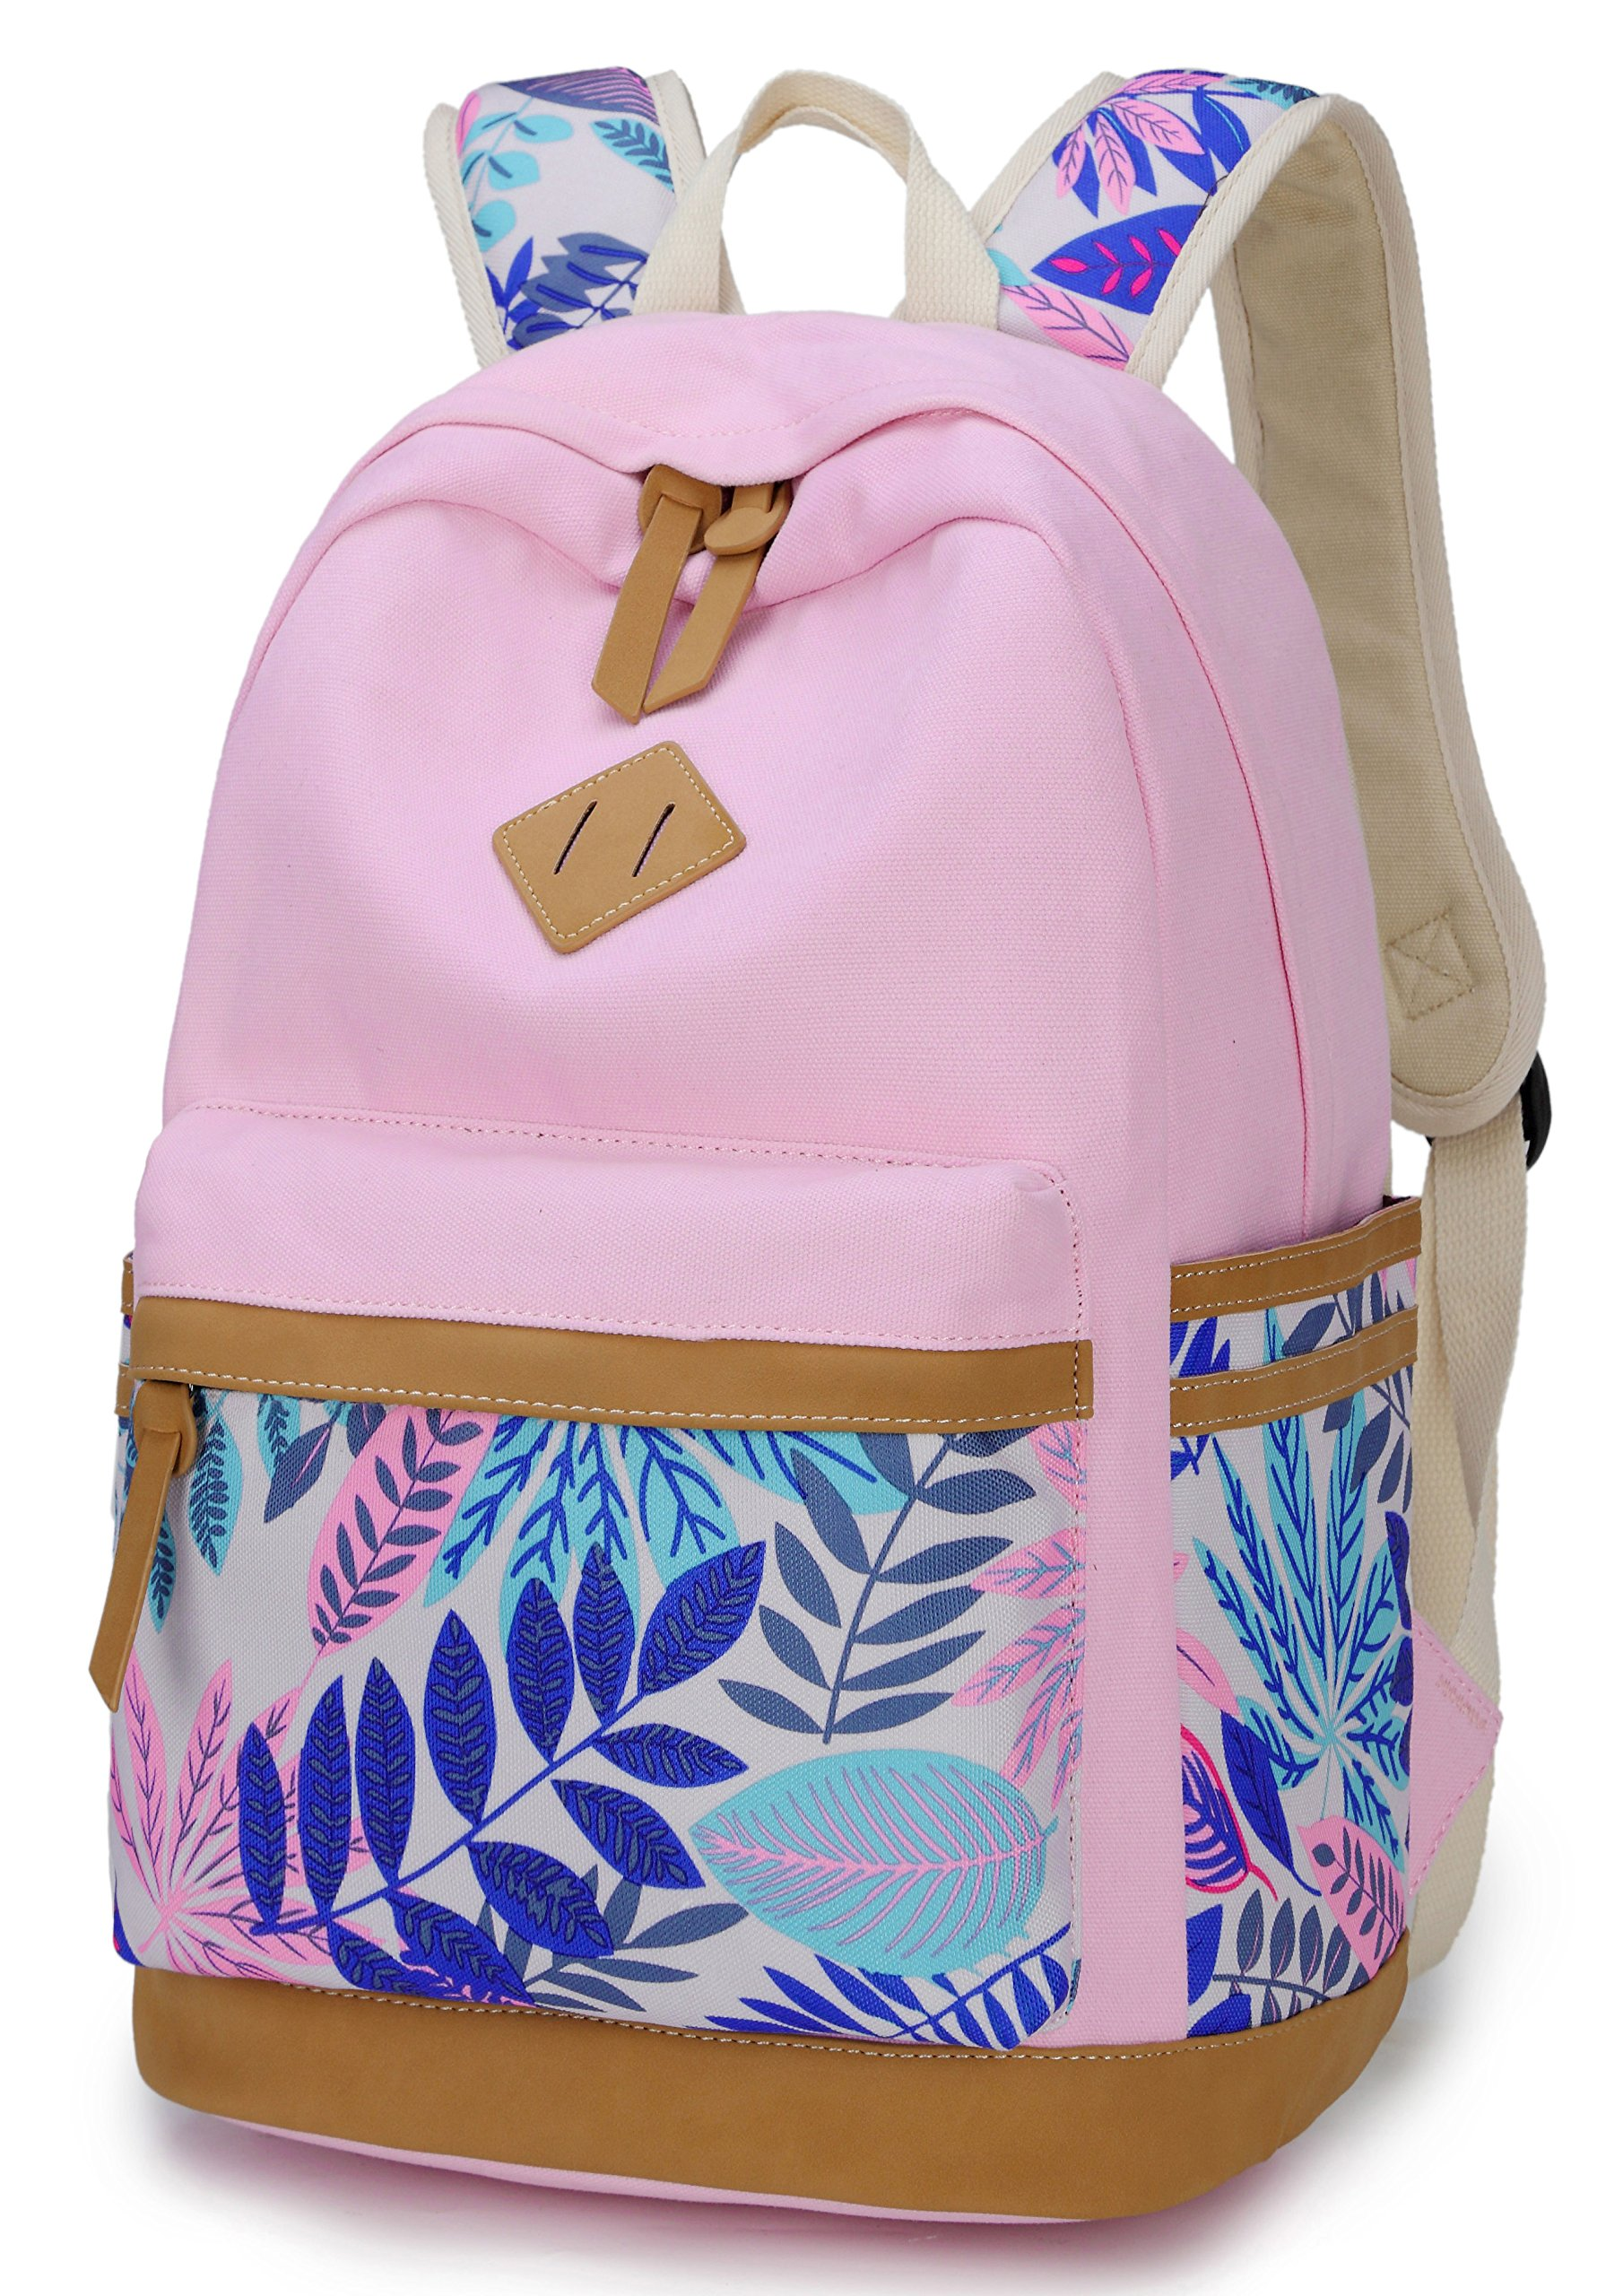 Goldwheat Girls Canvas Backpack School Bag College Bookbag Cute Casual Shoulder Daypack Travel Rucksack for Women Girls